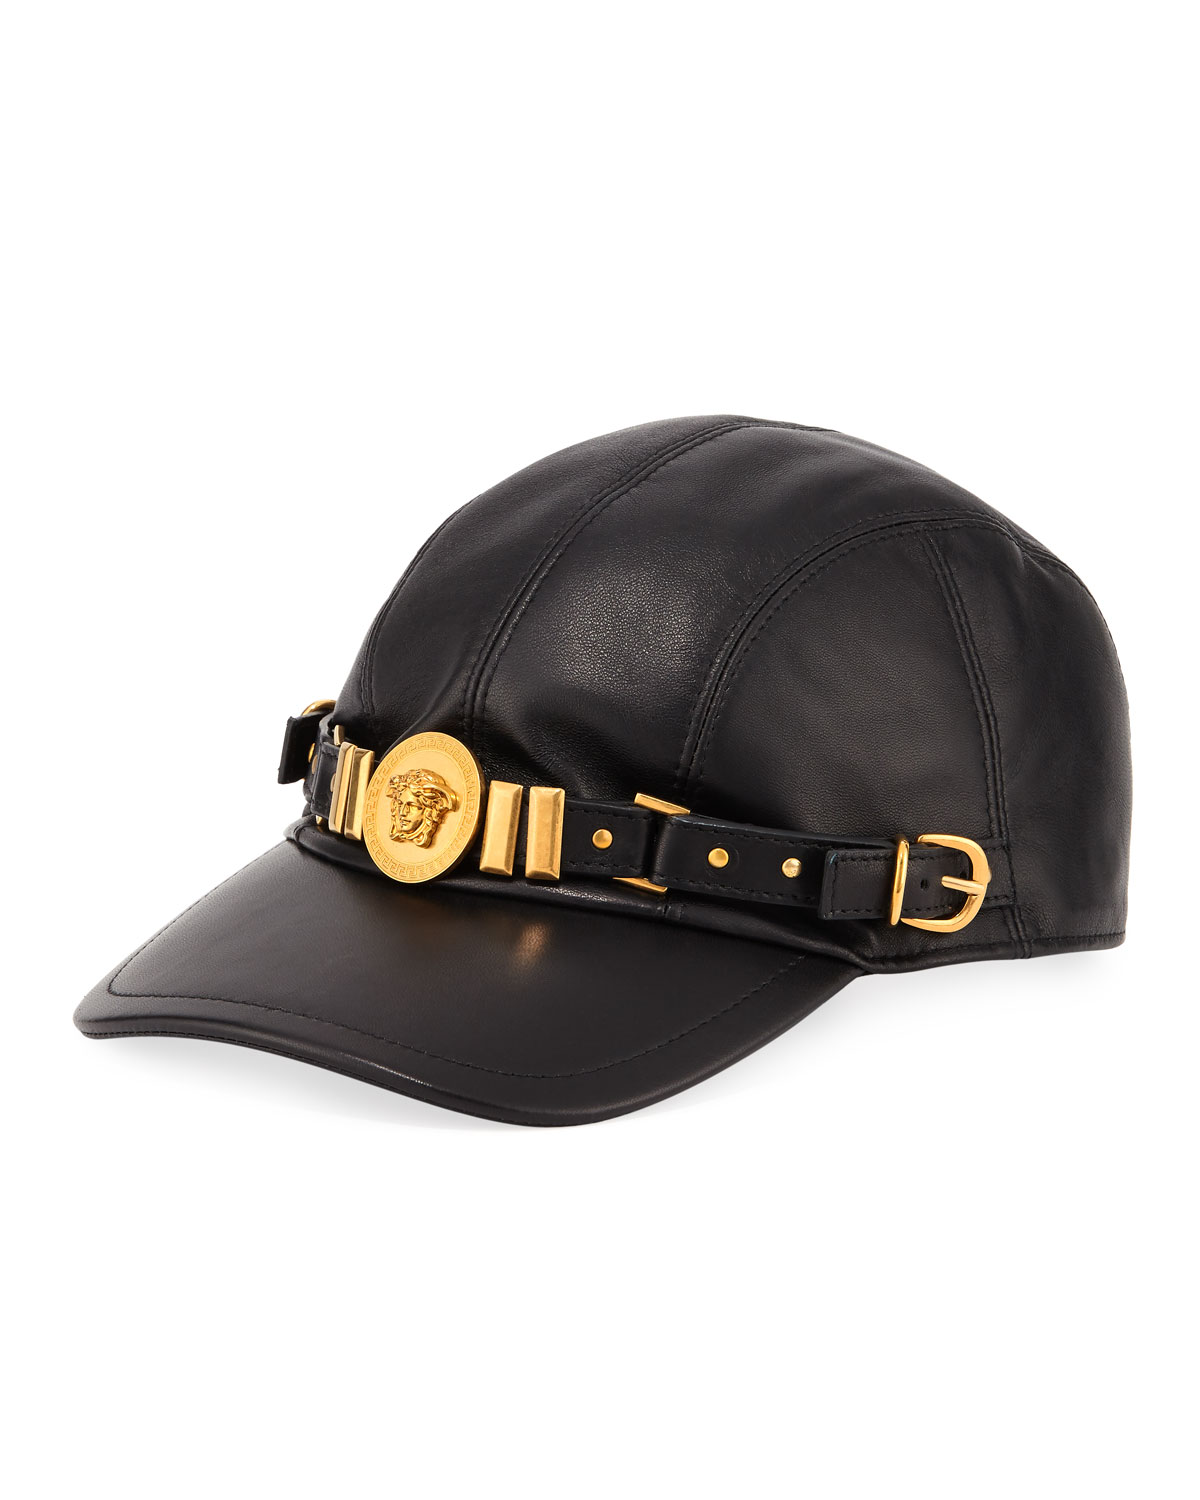 9701c074 Versace Collection Leather Baseball Cap with Medusa Medalion ...